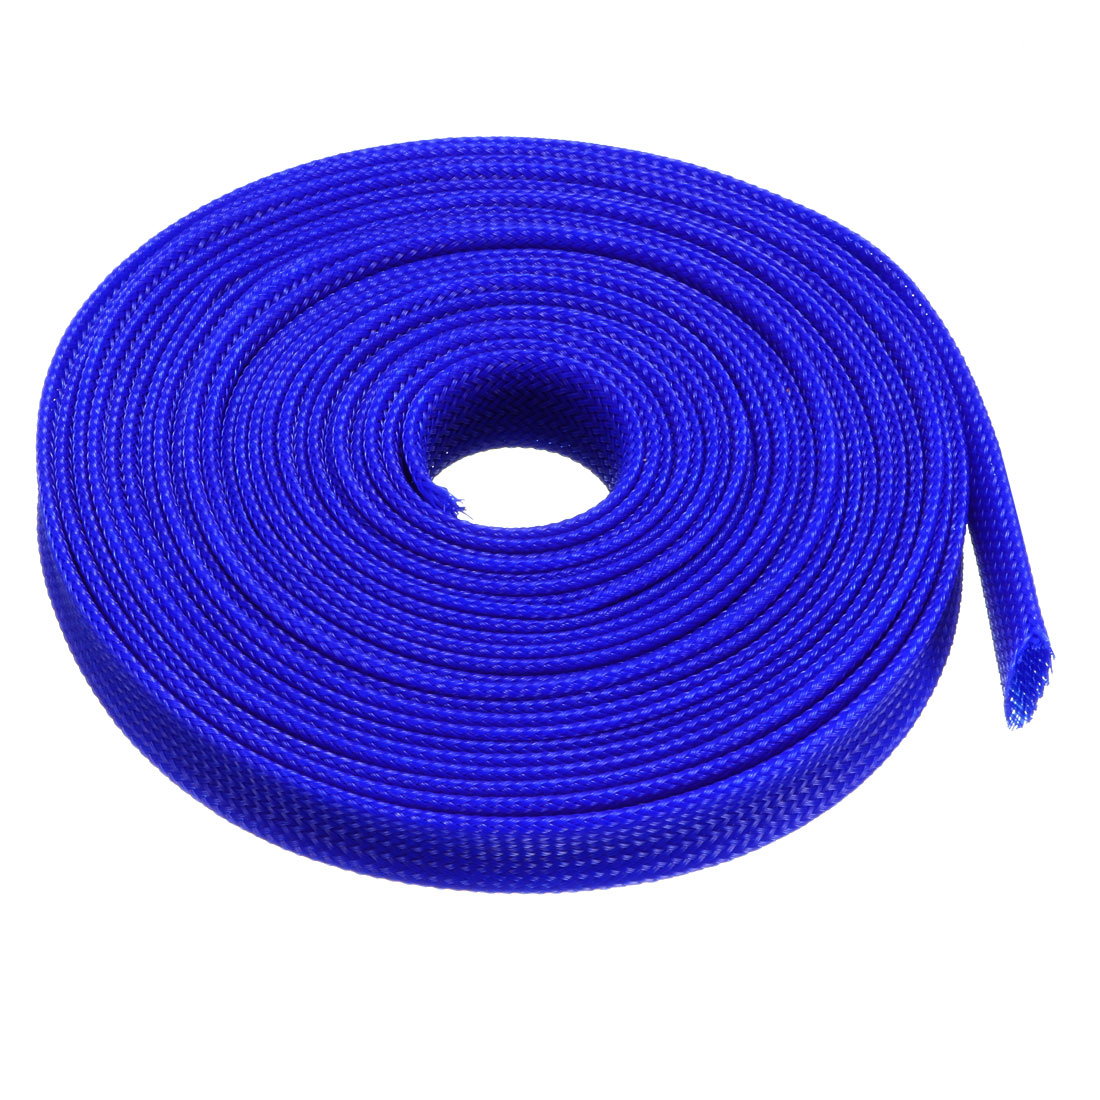 12mm Dia Tight Braided PET Expandable Sleeving Cable Wrap Sheath Royalblue 5M Length